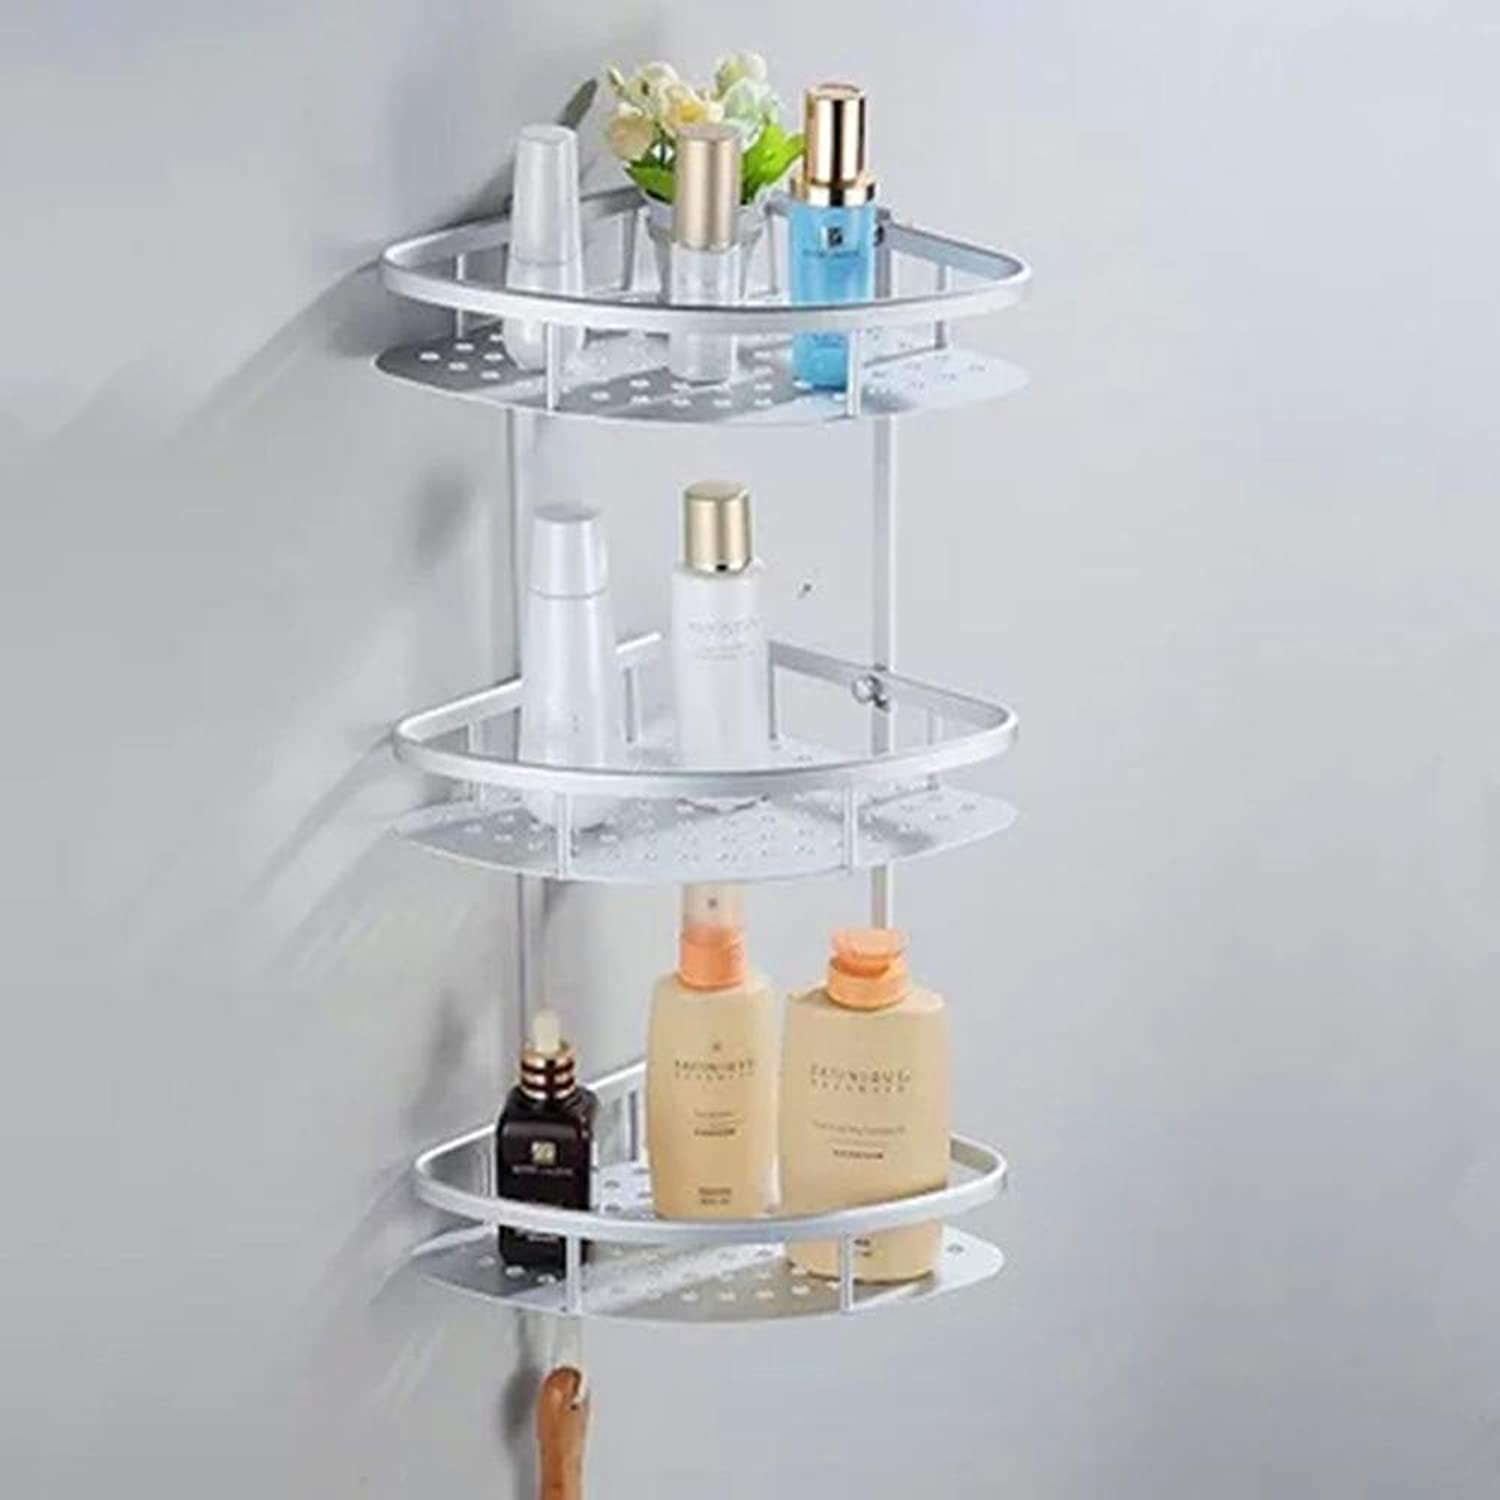 XAH@ Simple and modern space aluminum wall-mounted corner bathroom shelf